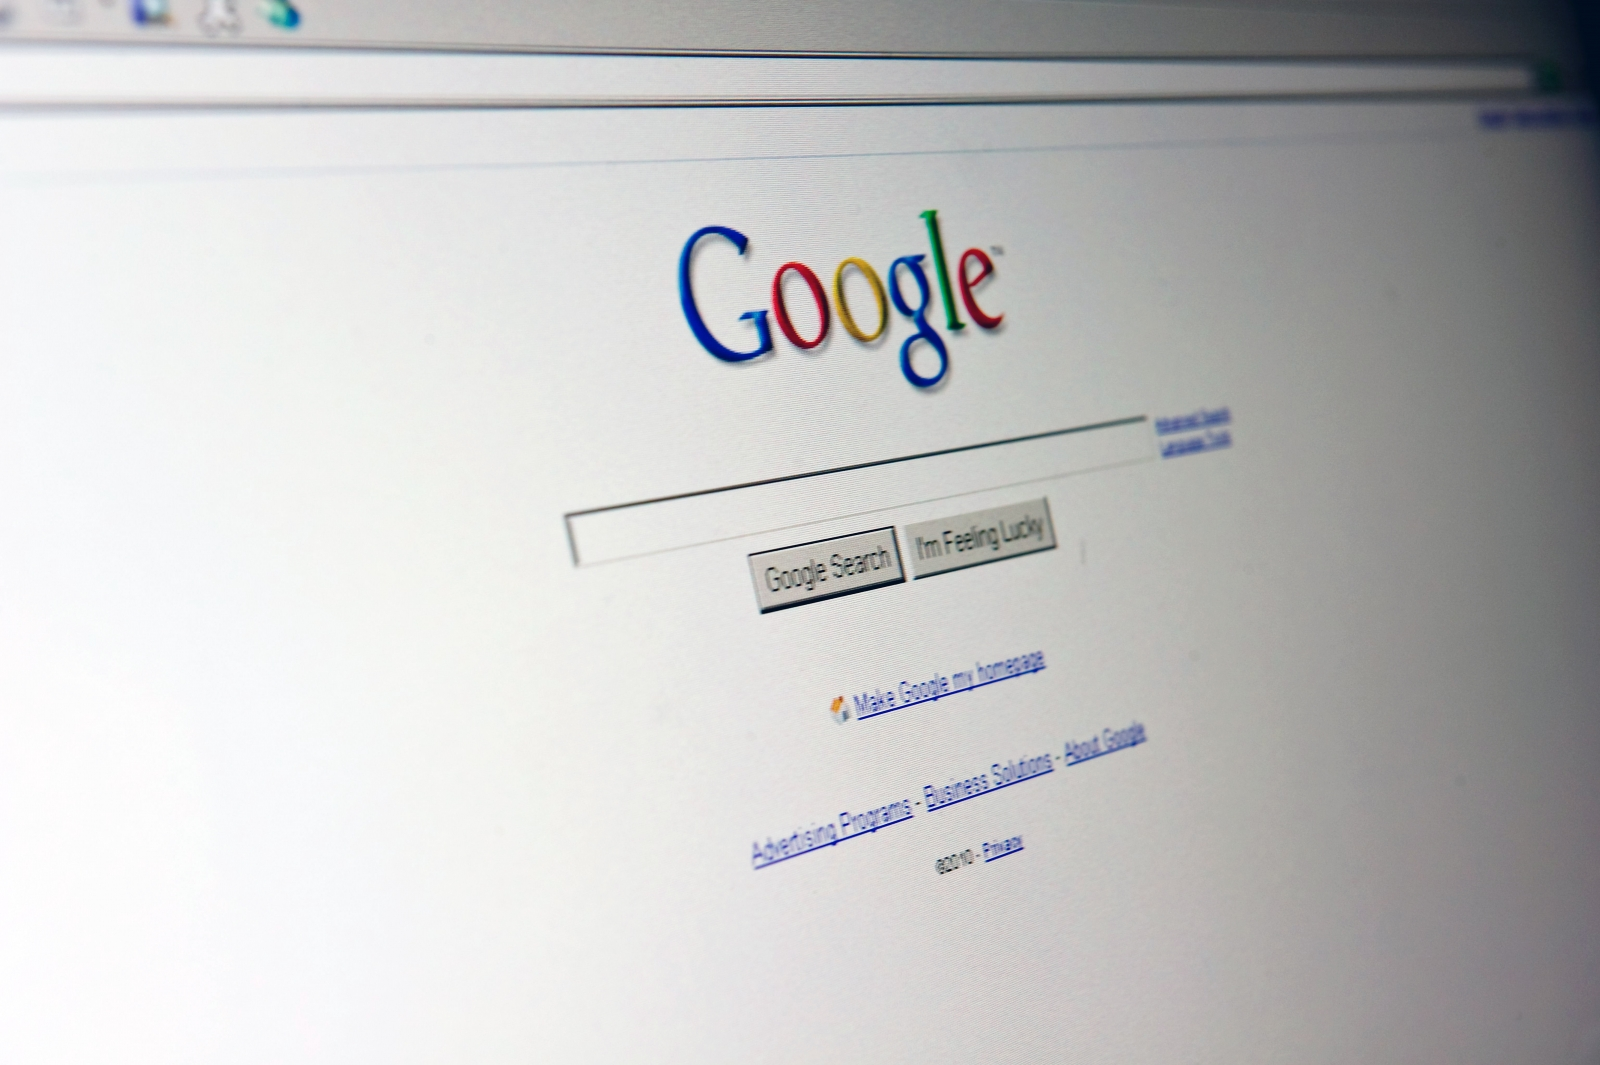 Google received more than 145,000 requests from EU countries to remove data. (Getty)